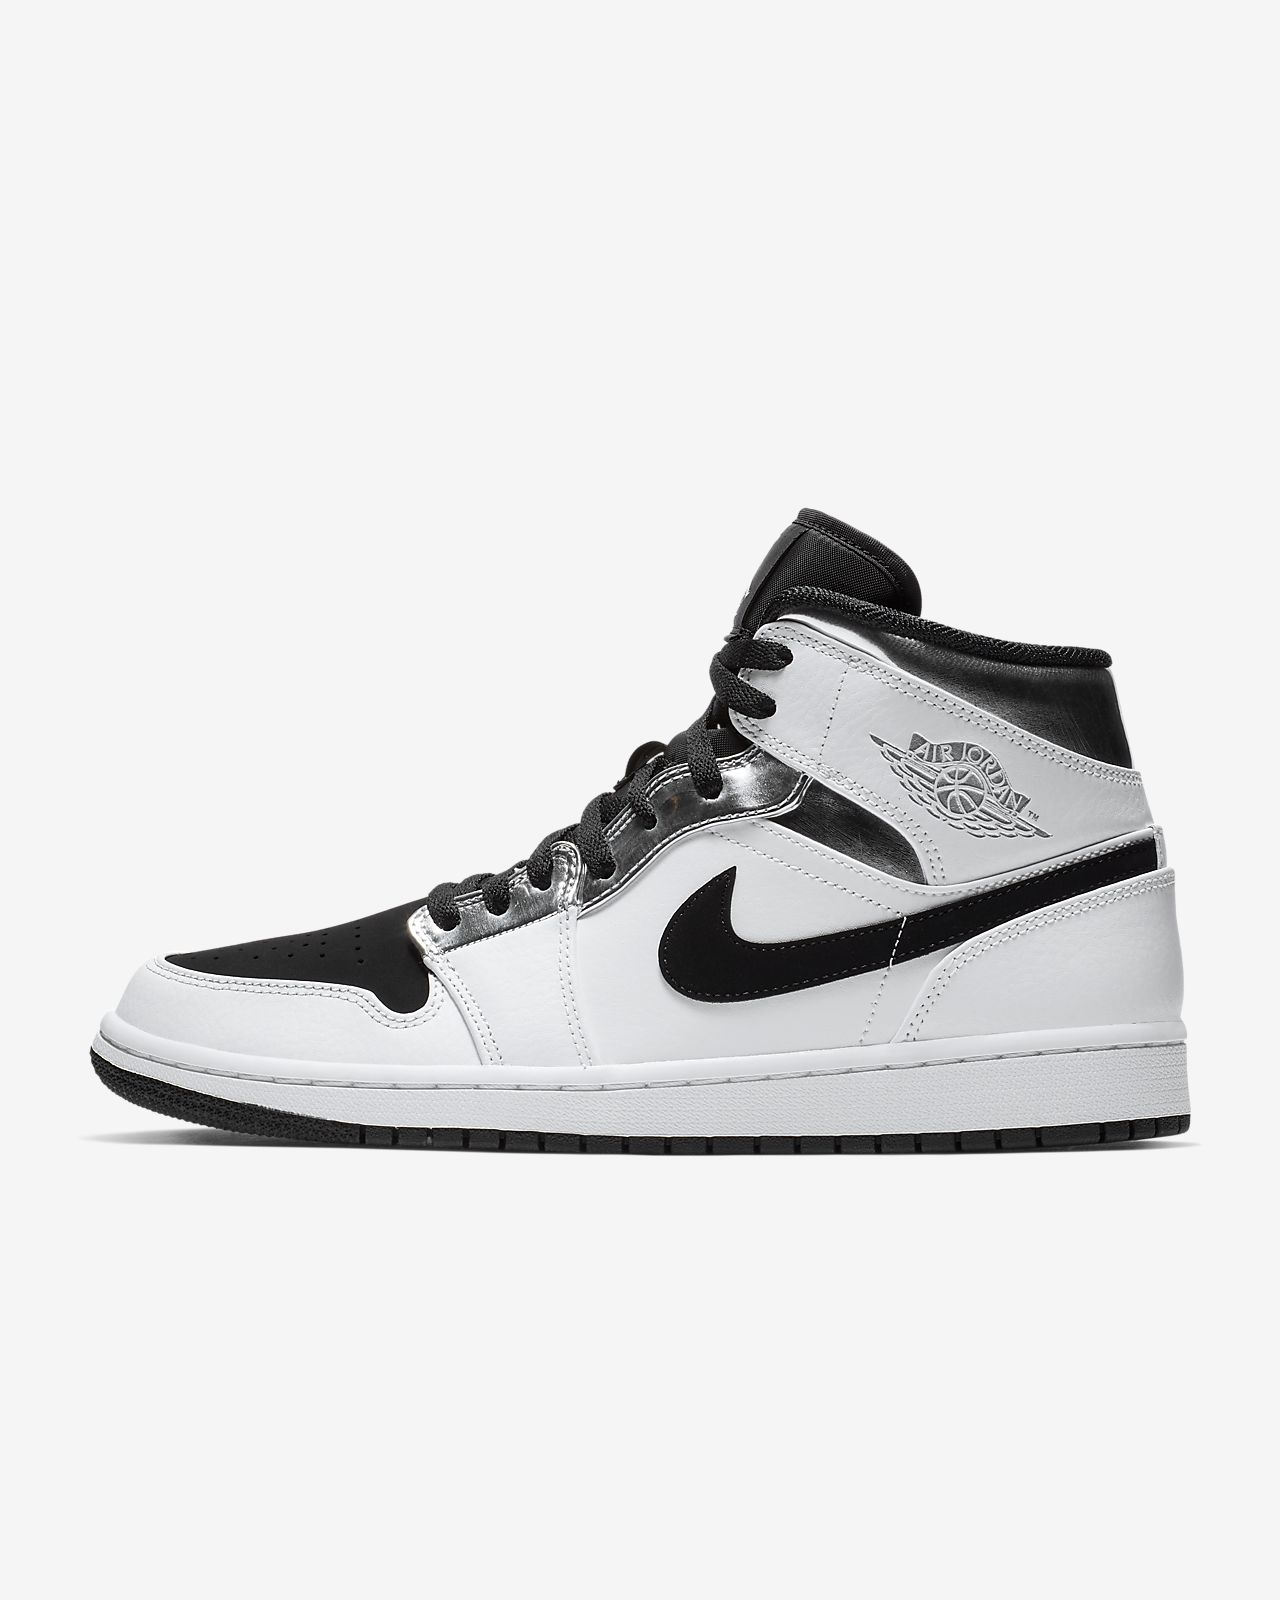 b80c3bbf171 Air Jordan 1 Mid Men s Shoe. Nike.com